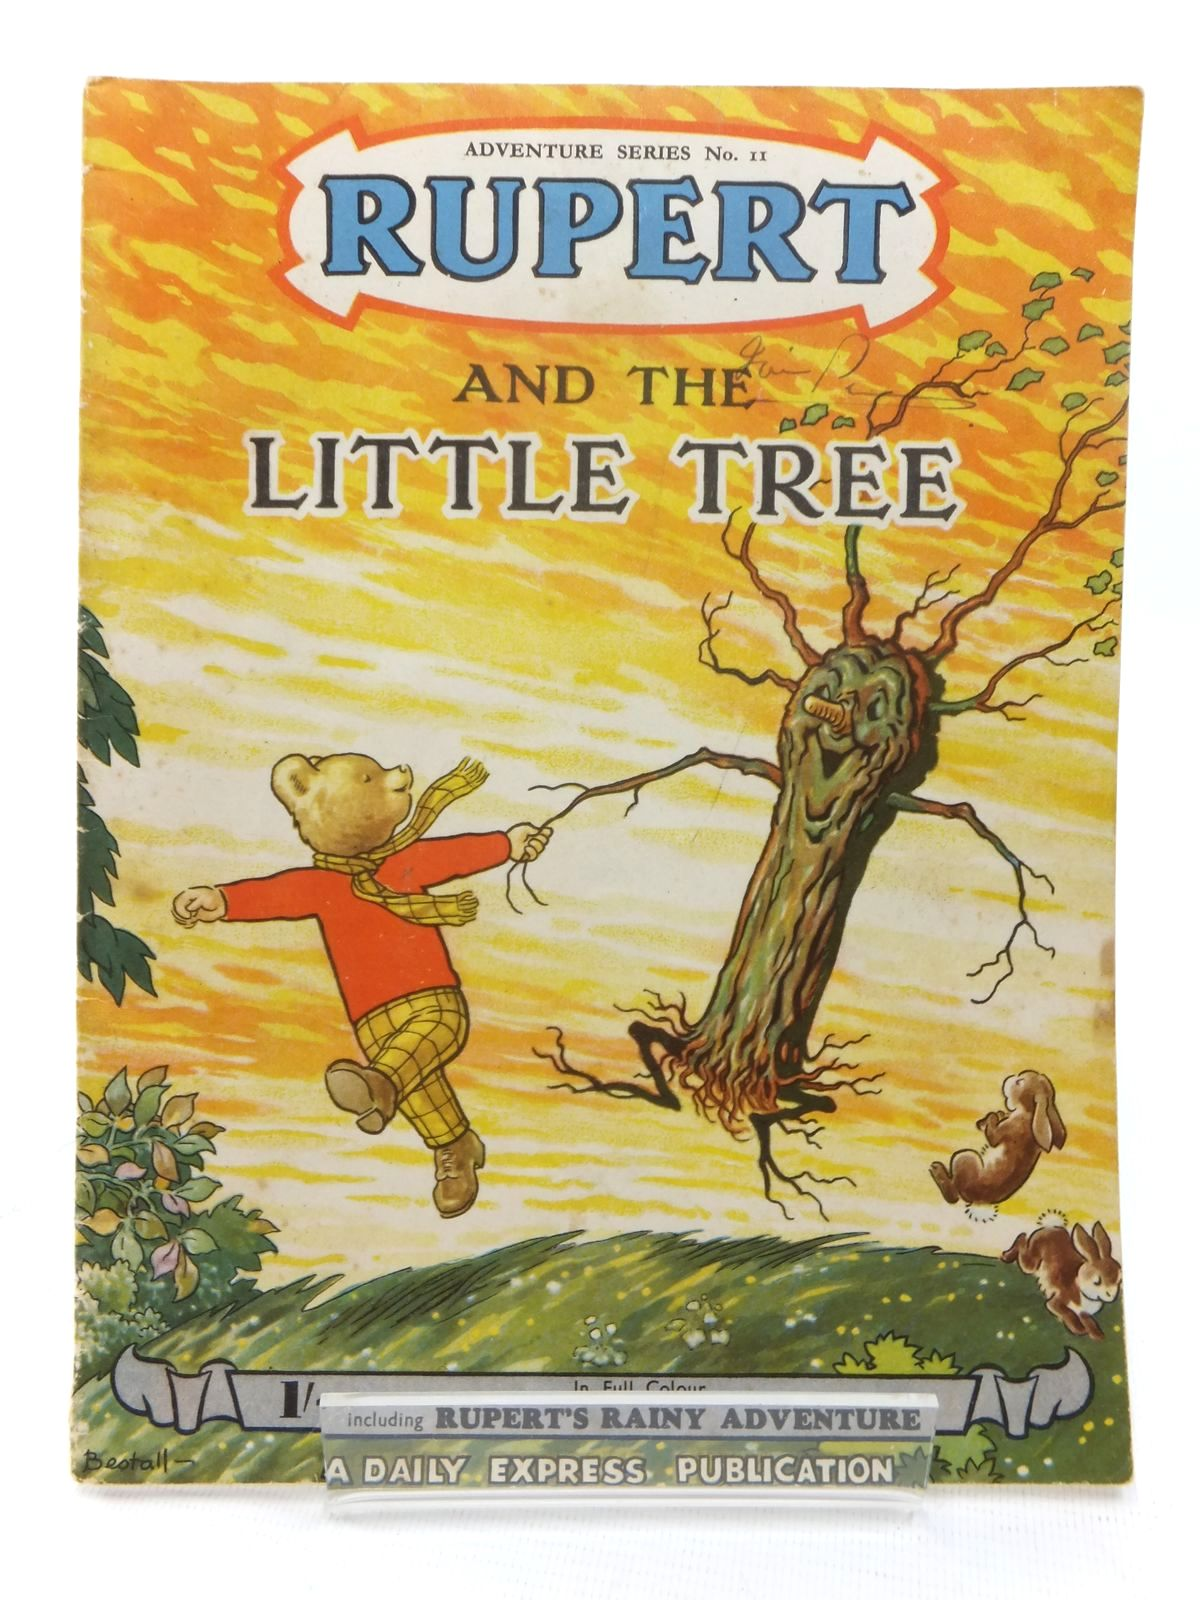 Photo of RUPERT ADVENTURE SERIES No. 11 - RUPERT AND THE LITTLE TREE written by Bestall, Alfred illustrated by Bestall, Alfred published by Daily Express (STOCK CODE: 1609553)  for sale by Stella & Rose's Books